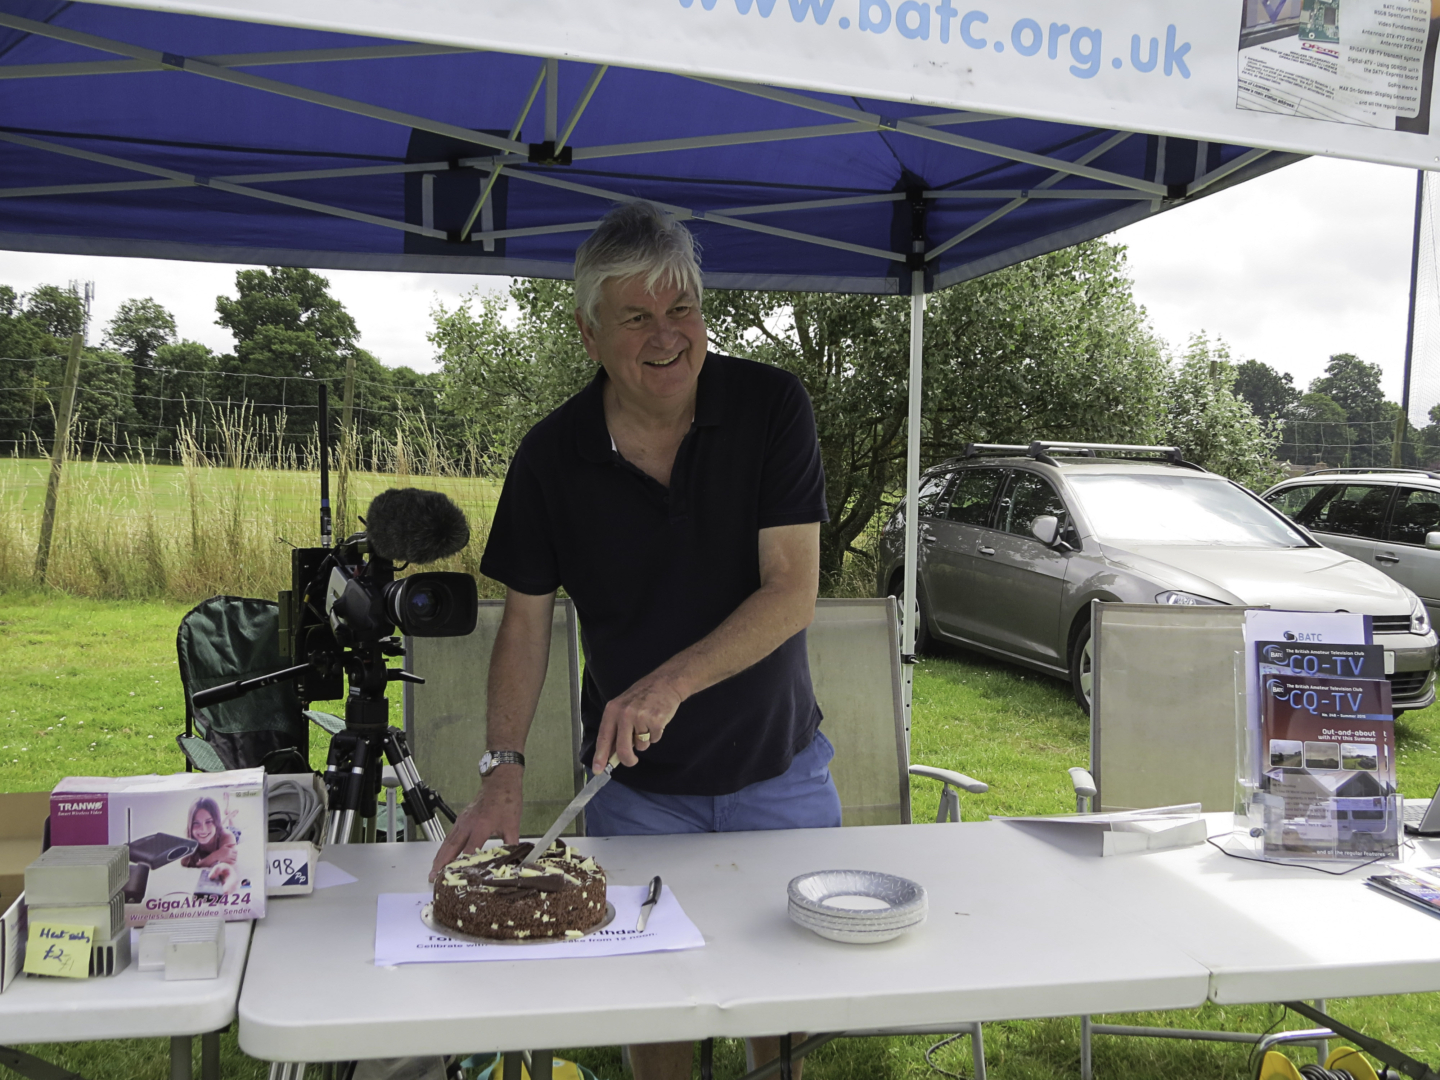 Tony Cutting His Birthday Cake on the BATC Stand Reading Rally July 2016